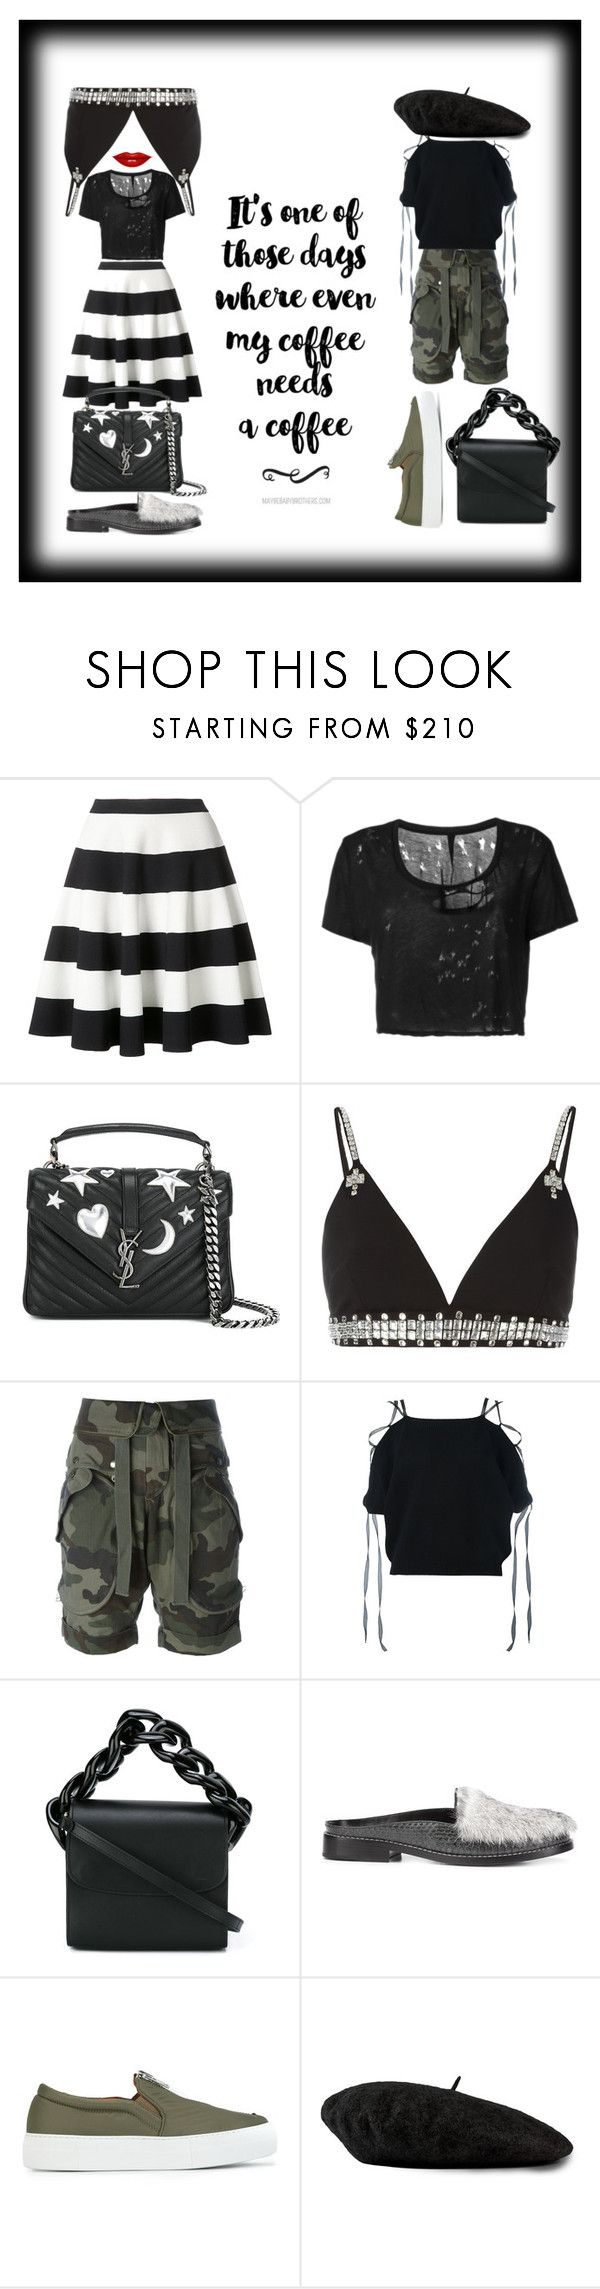 """black mamba¶"" by racheal-taylor ❤ liked on Polyvore featuring Akris Punto, Unravel, Yves Saint Laurent, Givenchy, Faith Connexion, Valentino, Marques'Almeida, Opening Ceremony, Joshua's and Gucci"